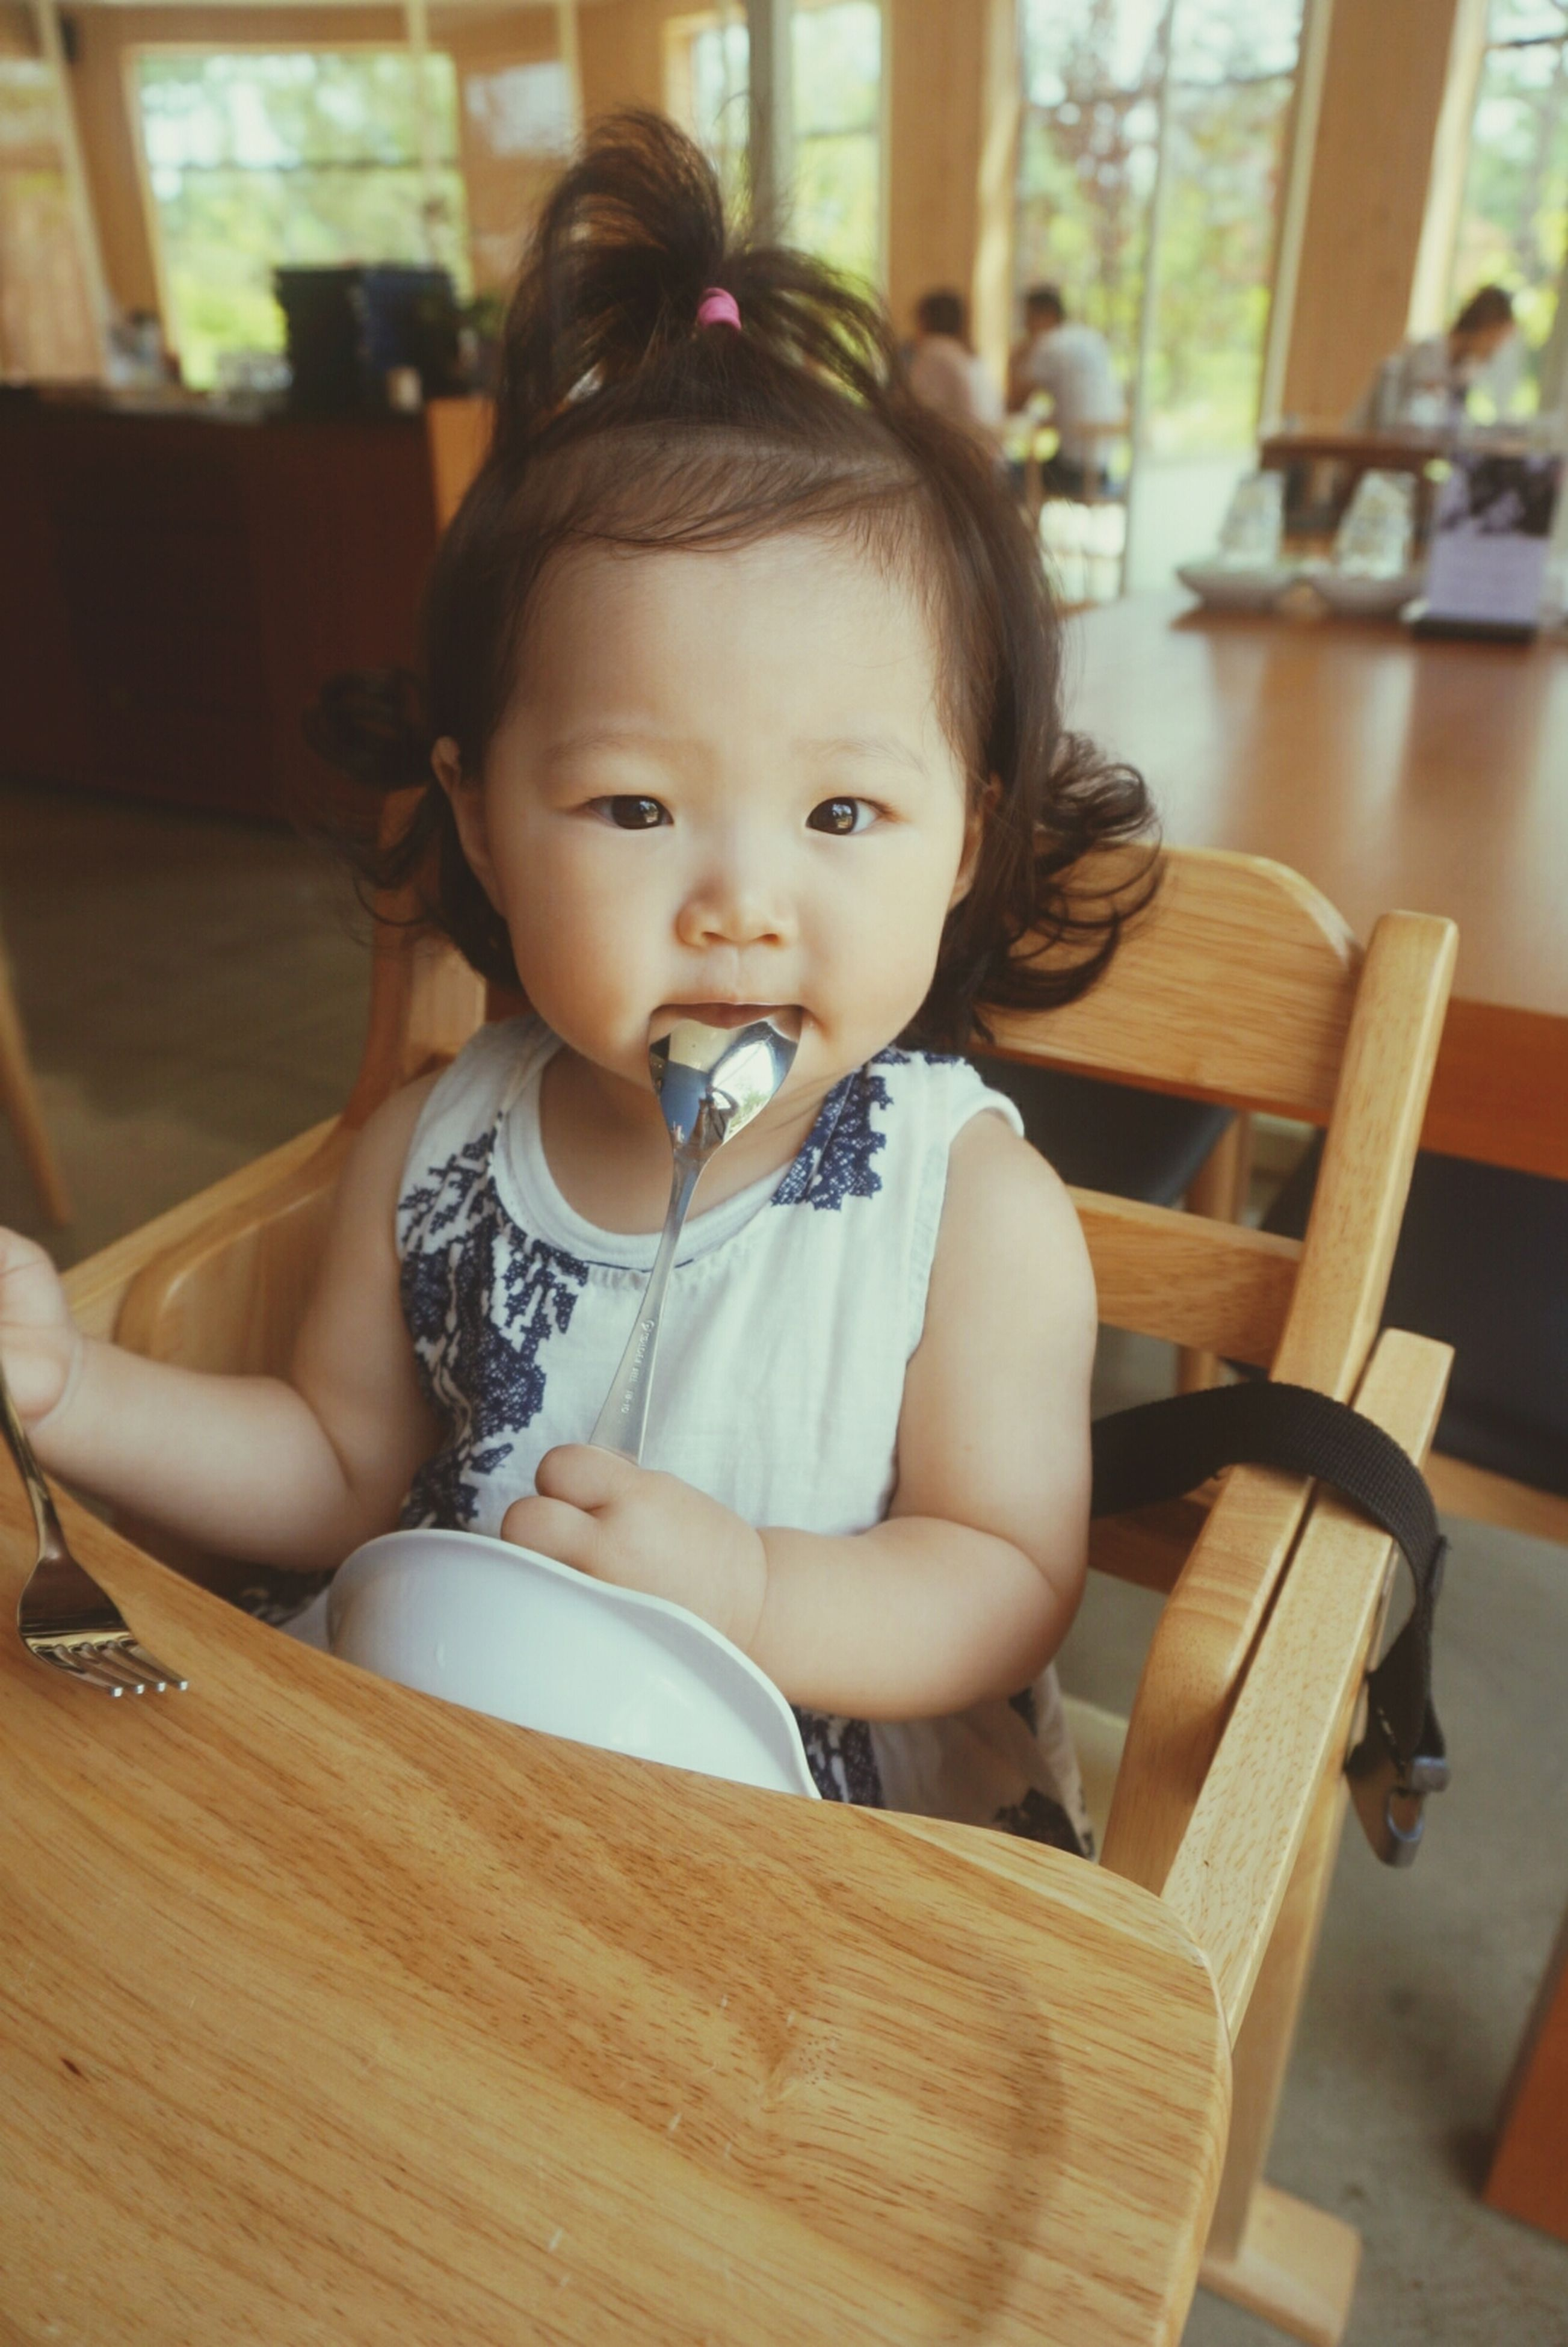 indoors, childhood, person, home interior, sitting, table, elementary age, cute, looking at camera, innocence, lifestyles, front view, portrait, casual clothing, leisure activity, chair, girls, boys